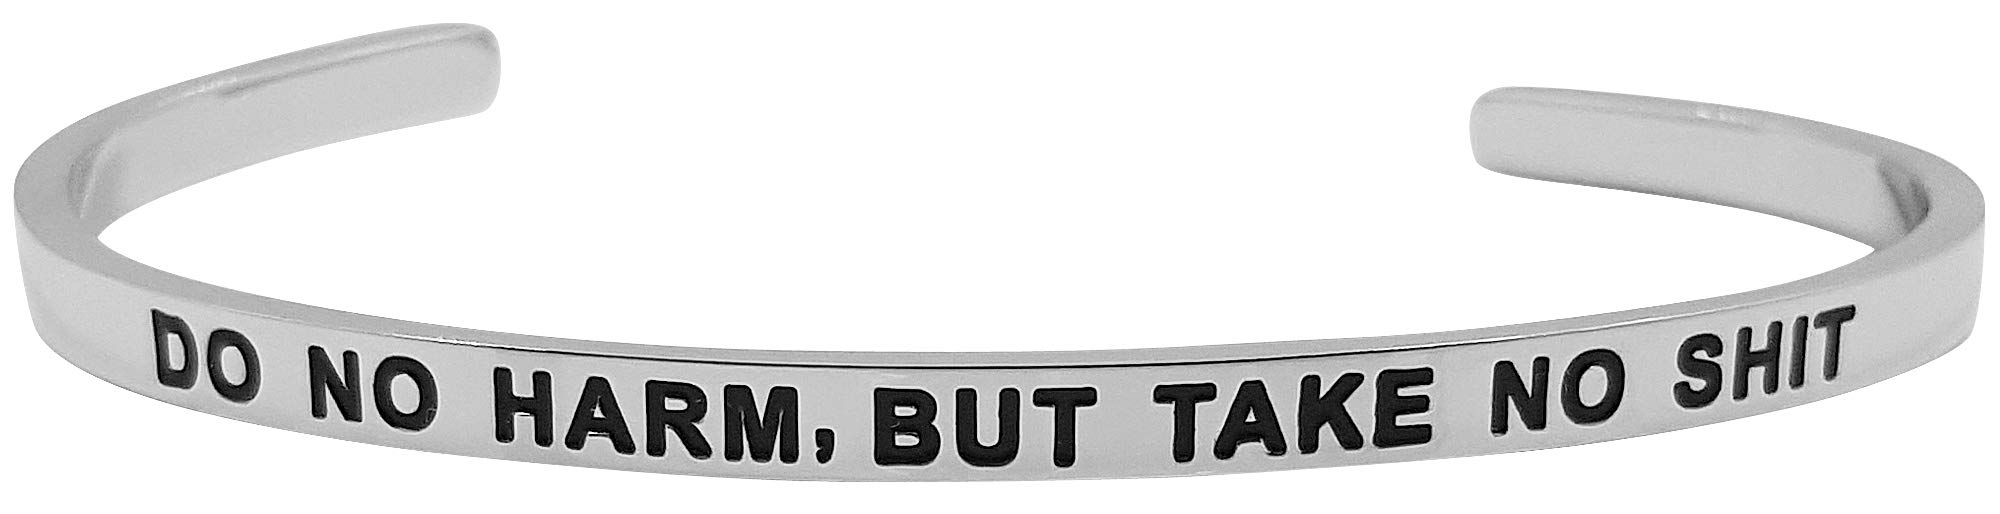 Do No Harm Inspirational Mantra Feminist Quote Cuff Bangle Bracelet - Christmas, Birthday Jewelry Gifts for Women, Teen Girls, Sister, Niece, Daughter